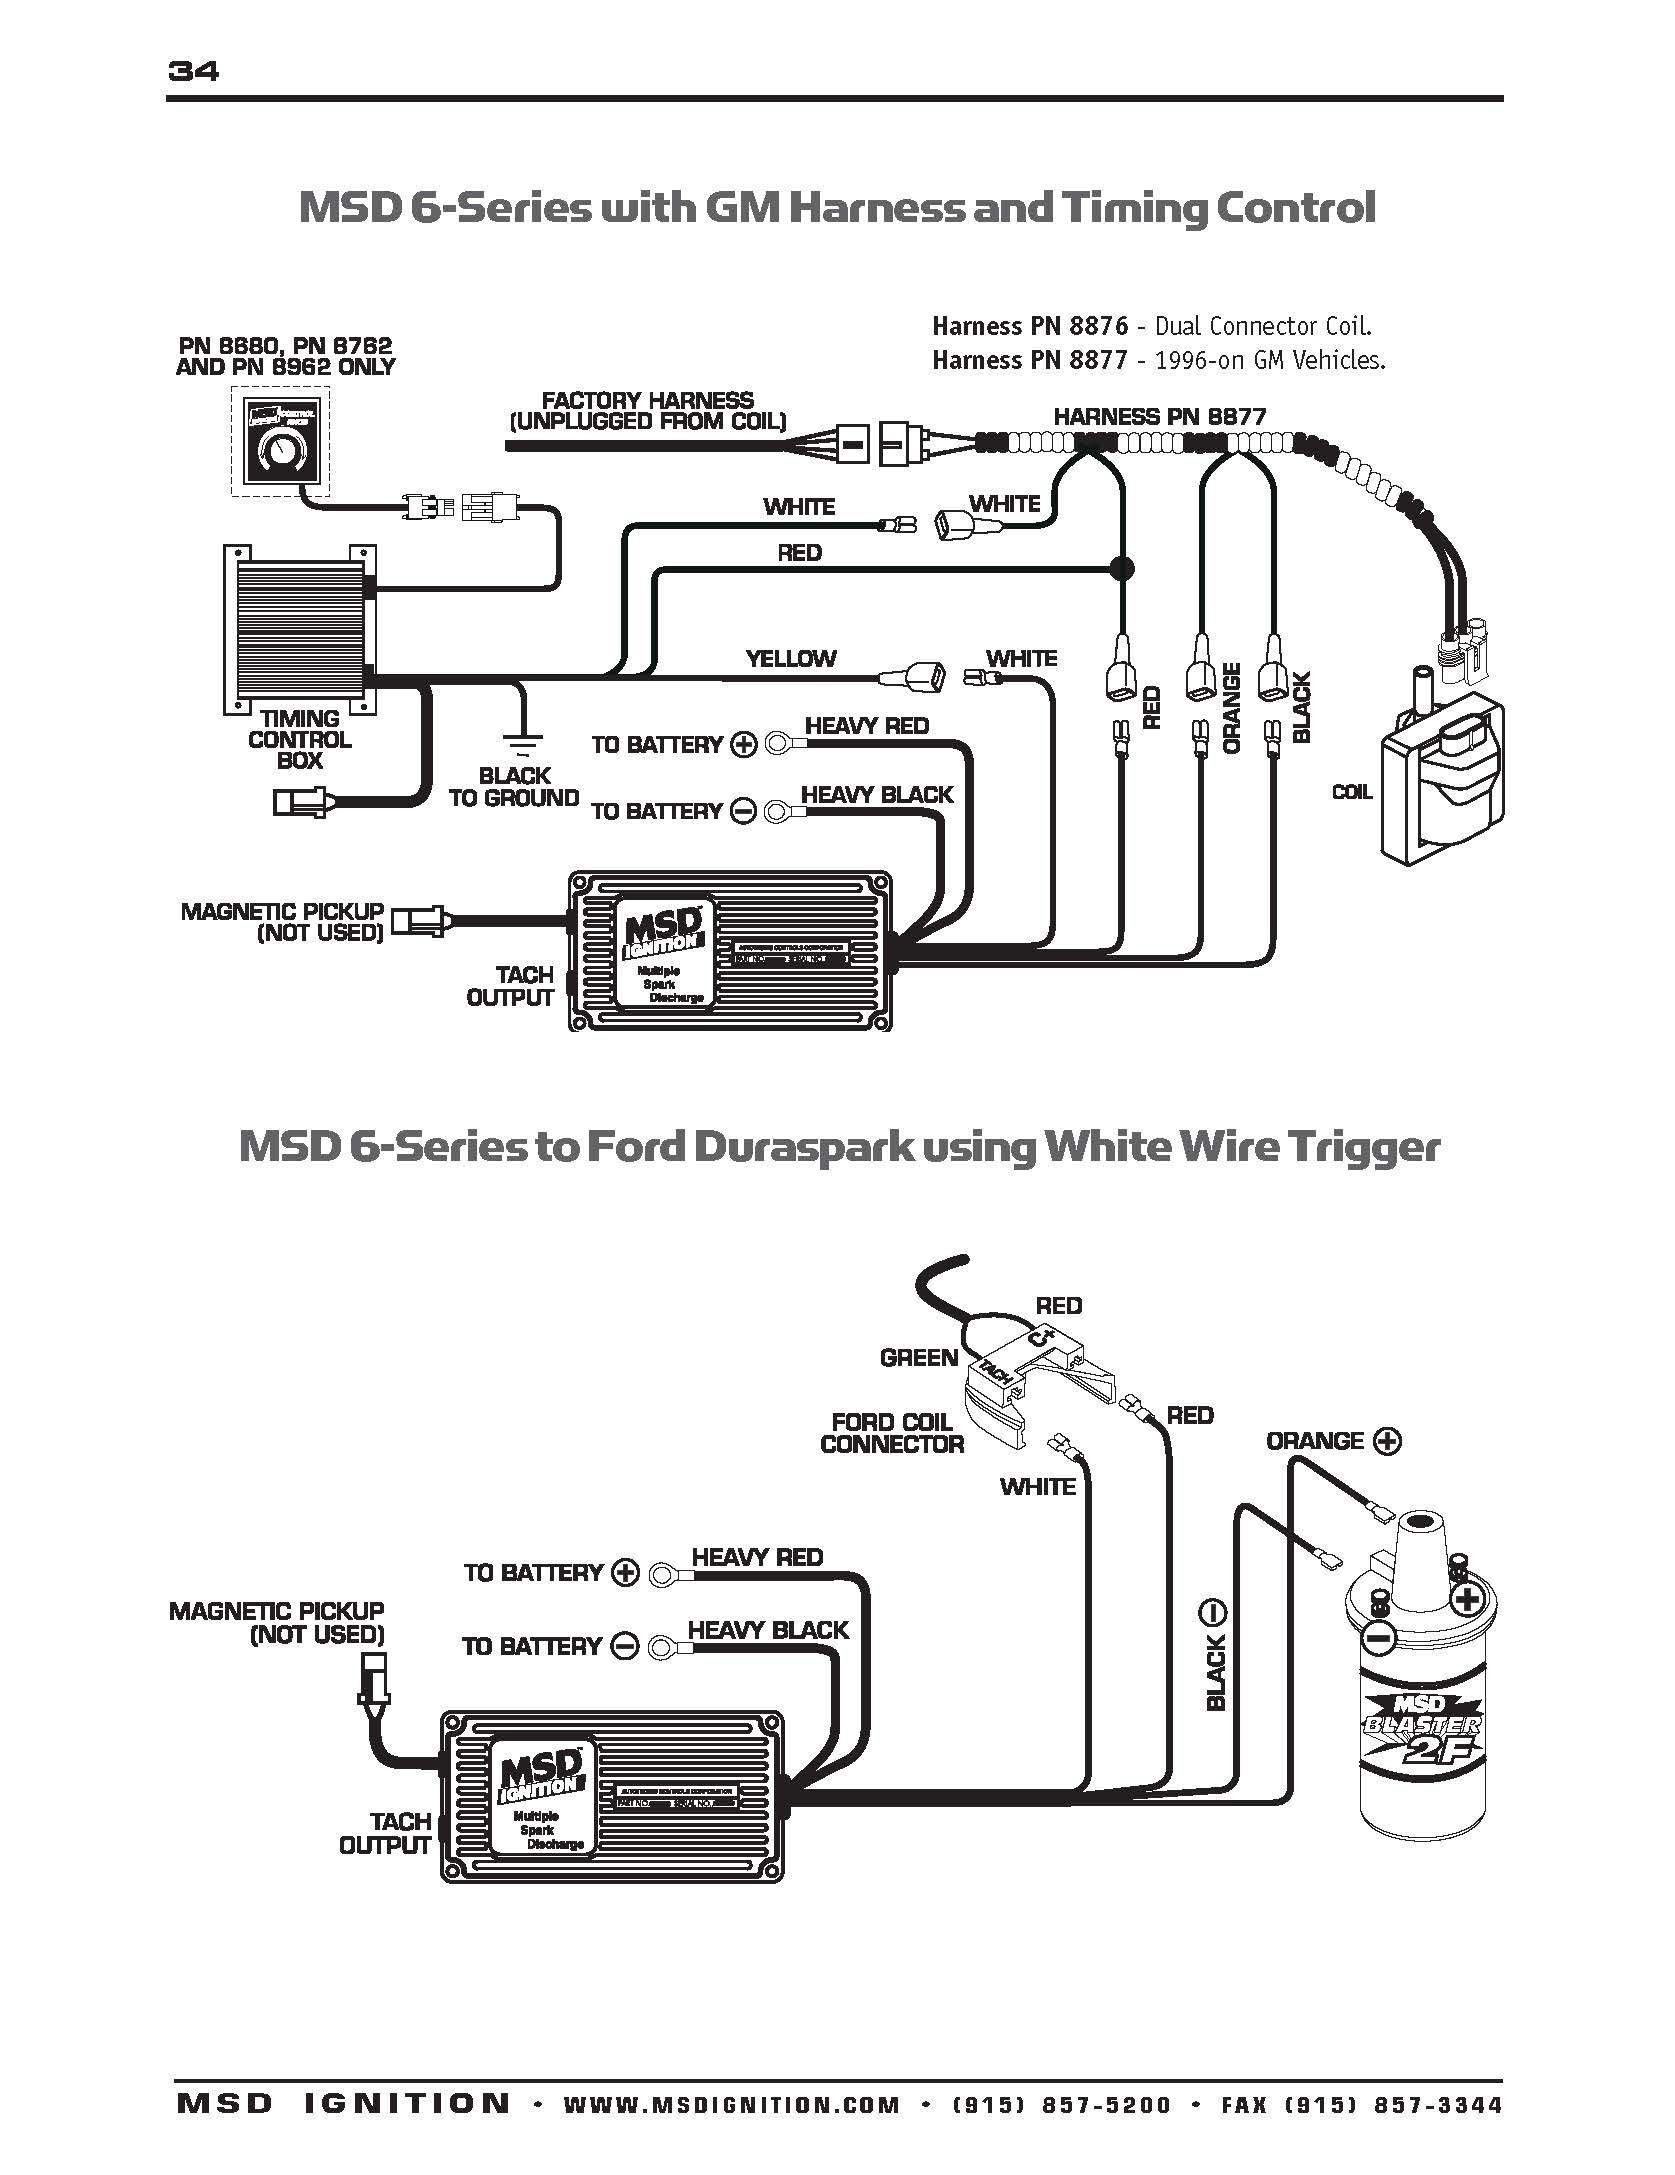 gm hei distributor wiring diagram lovely chevy ford ignition coil of 318 distributor wiring diagram gm coil and distributor wiring diagram [ 1675 x 2175 Pixel ]